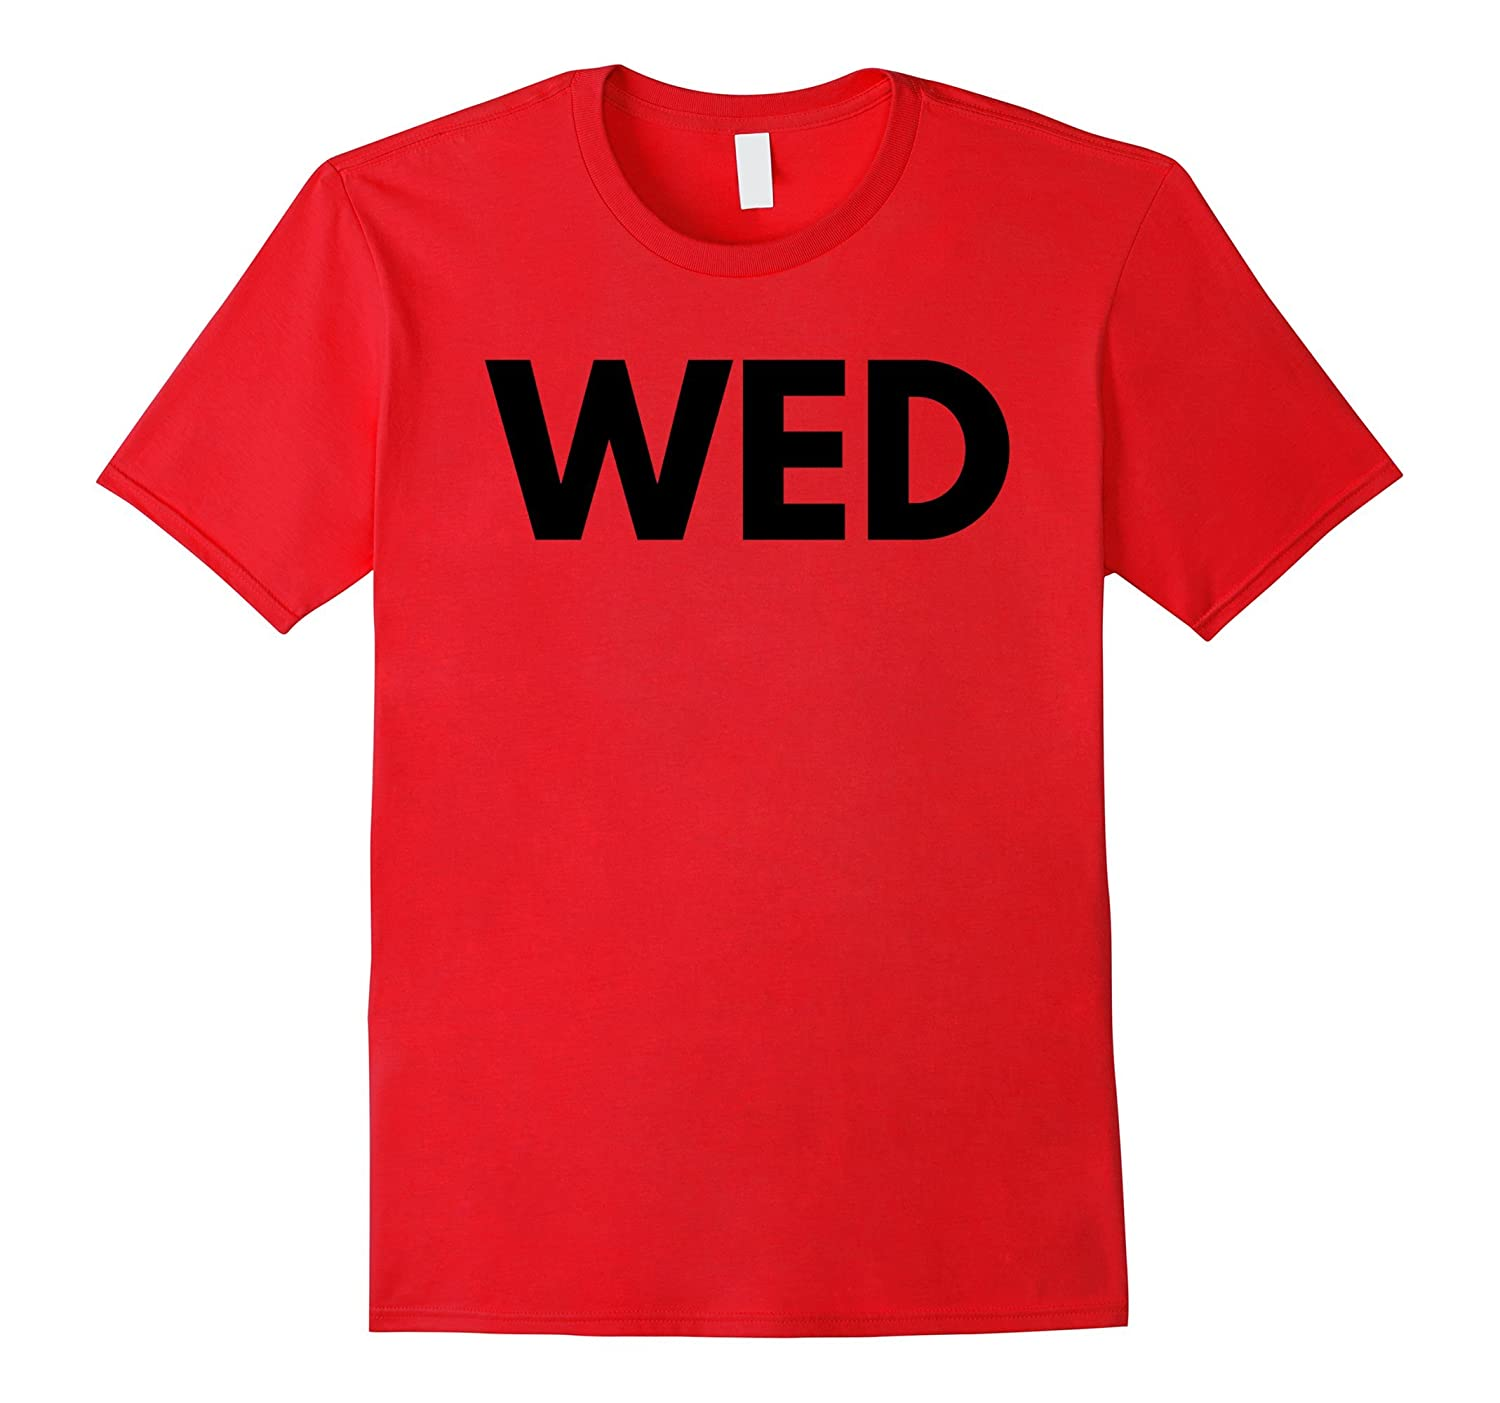 Wednesday T-Shirt Days of the Week T-Shirts, Costume, Etc-T-Shirt